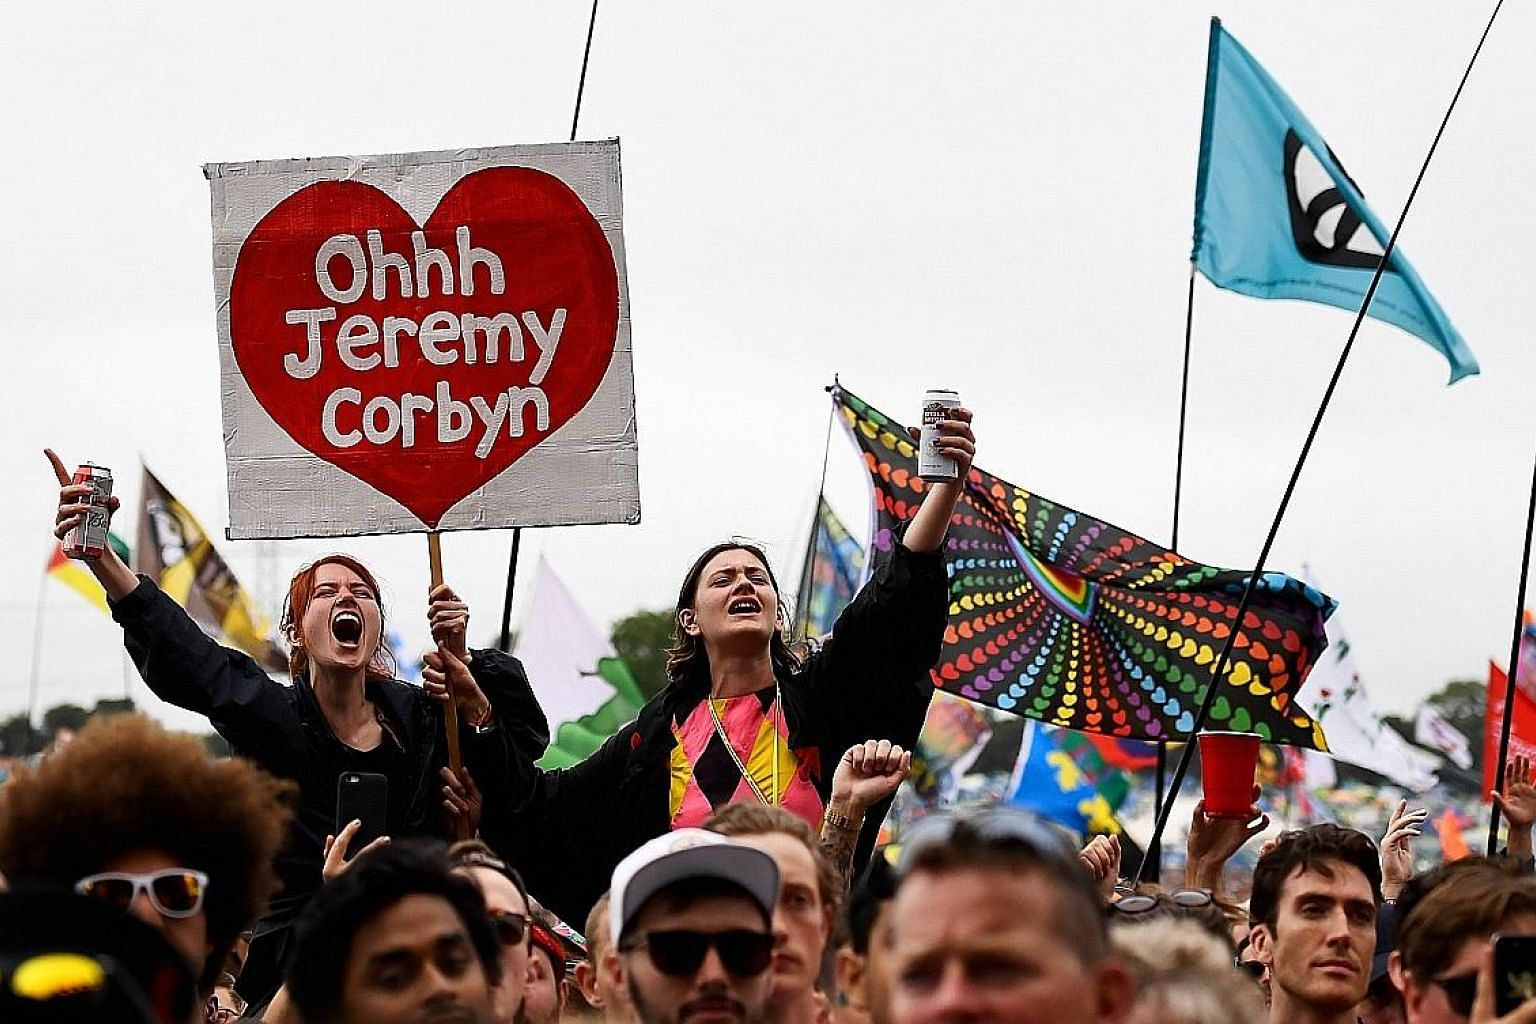 Revellers cheering Labour Party leader Jeremy Corbyn at Worthy Farm in Somerset during the Glastonbury Festival last Saturday.